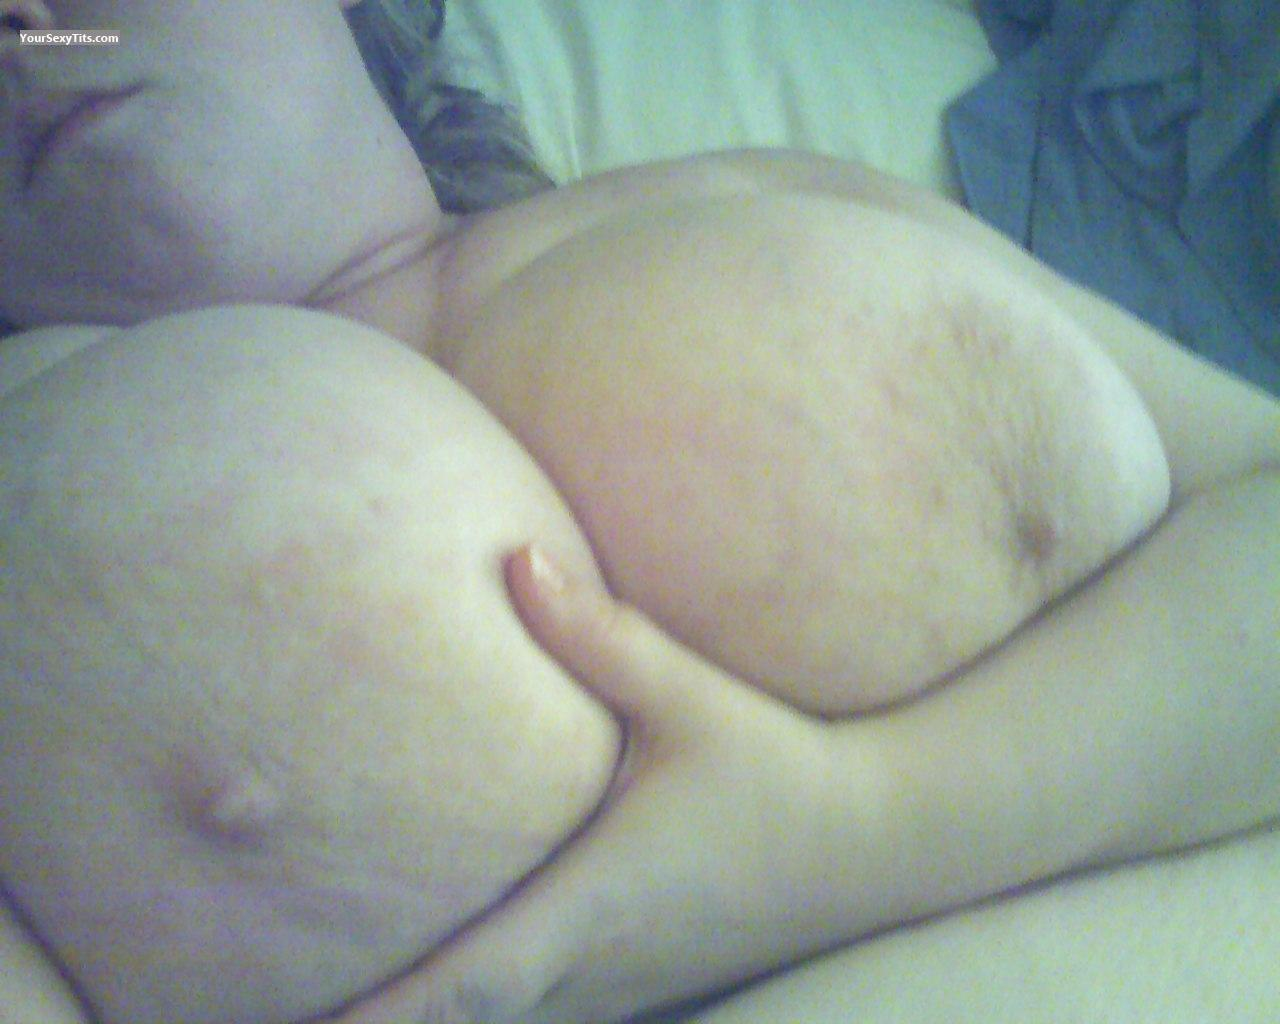 Tit Flash: My Very Big Tits (Selfie) - Wendy from United States